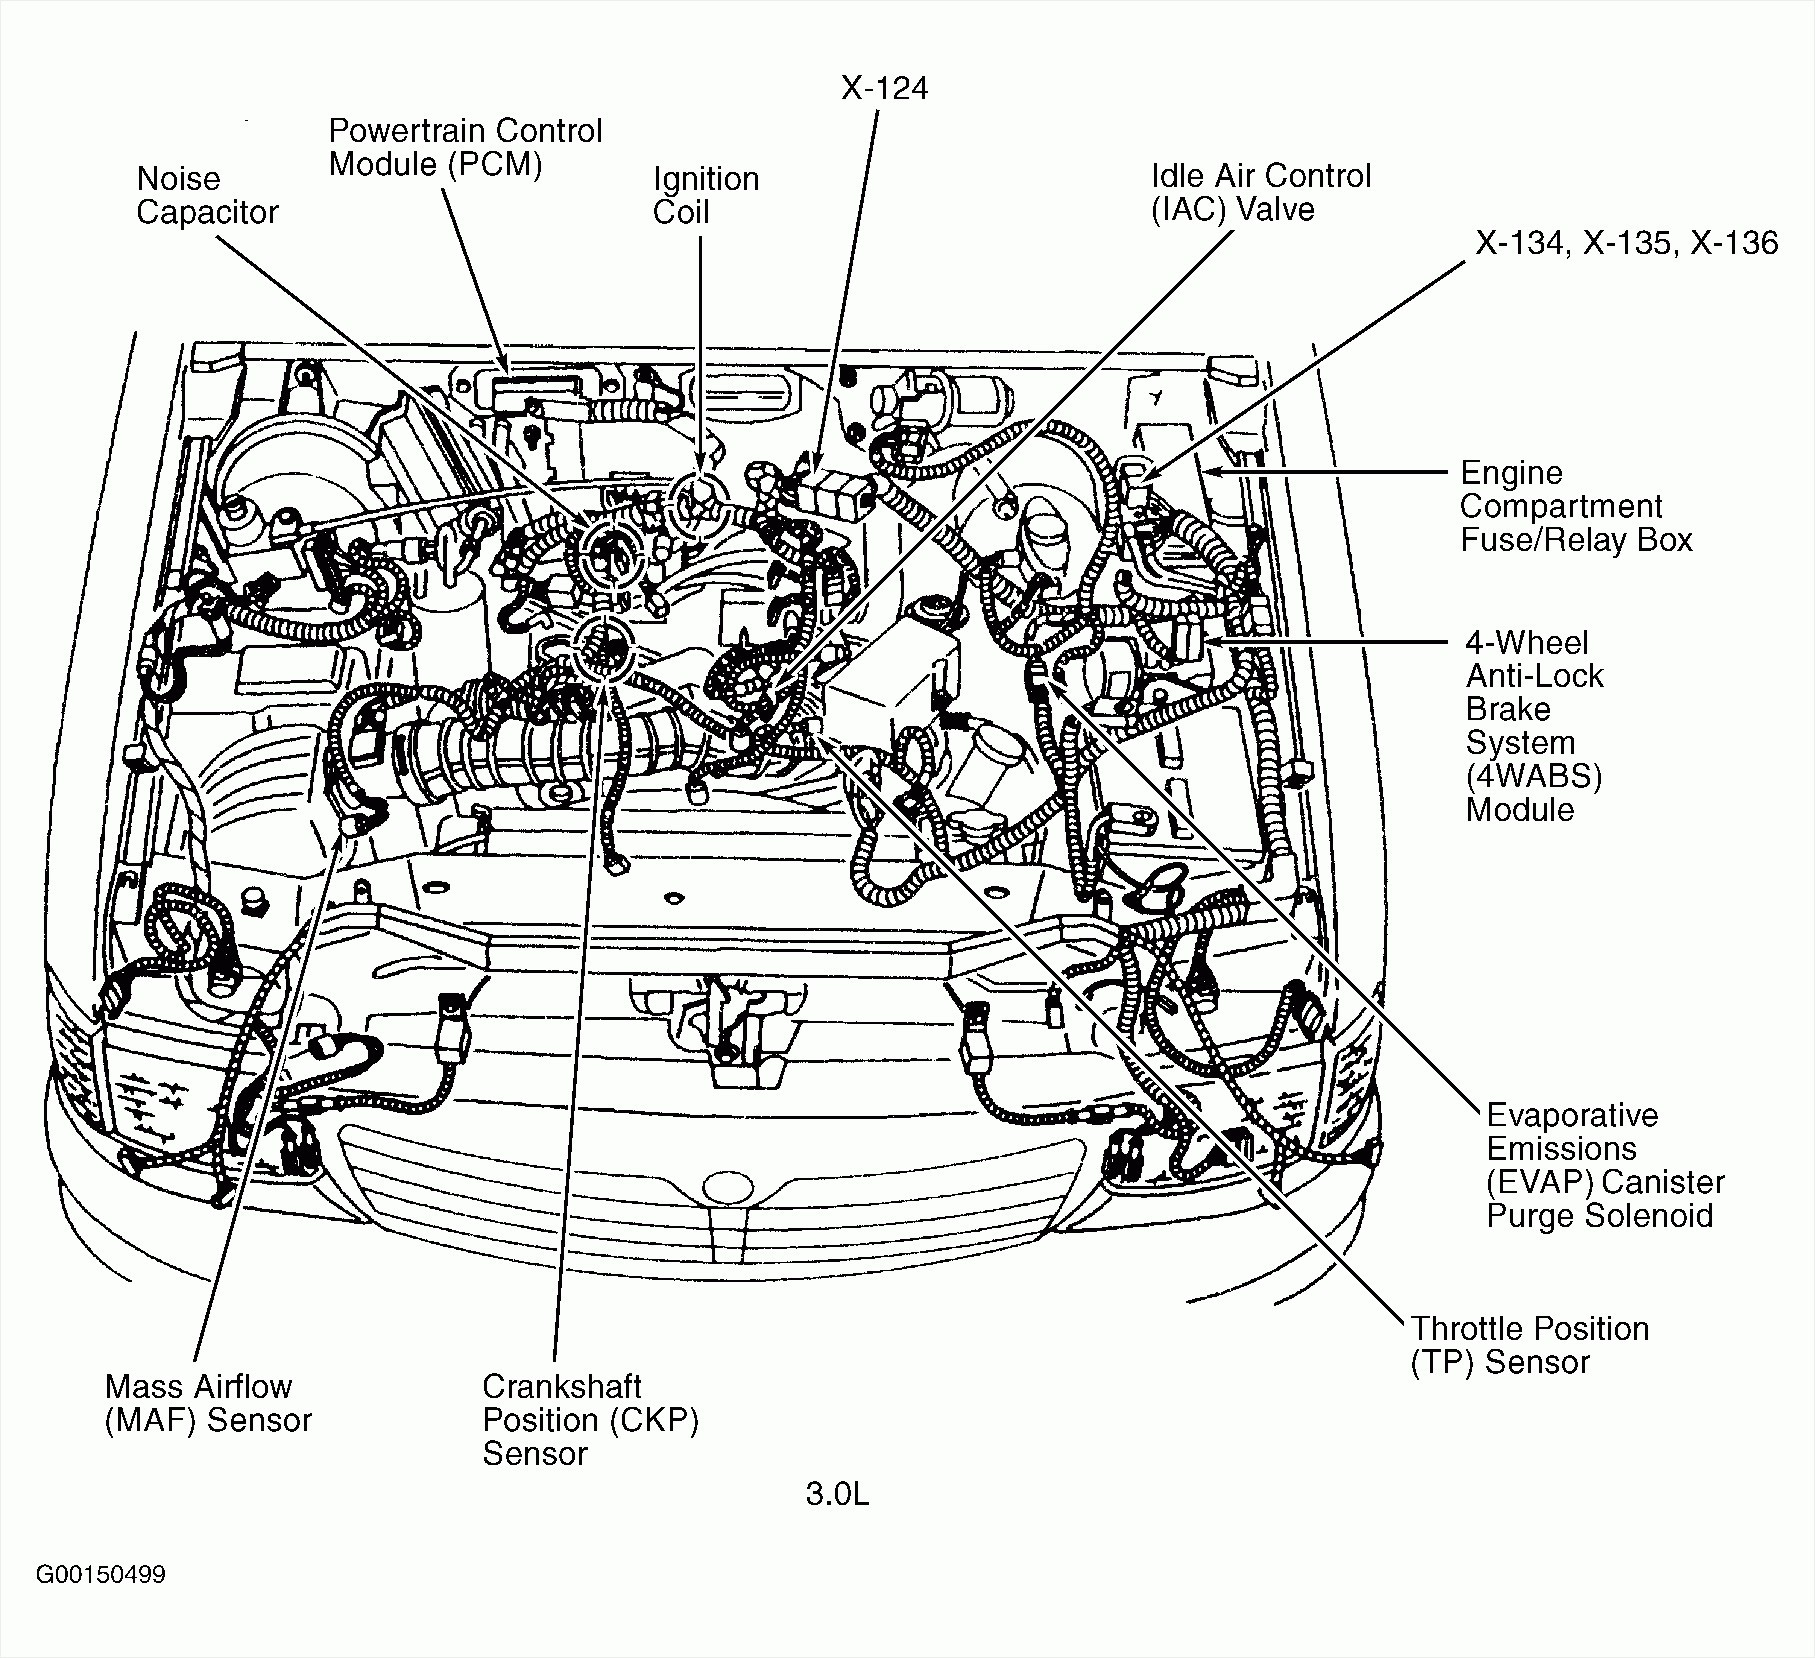 Toyota 4runner Engine Diagram 97 4runner Starter Wiring Diagram Schema Wiring Diagram Of Toyota 4runner Engine Diagram 97 4runner Starter Wiring Diagram Schema Wiring Diagram